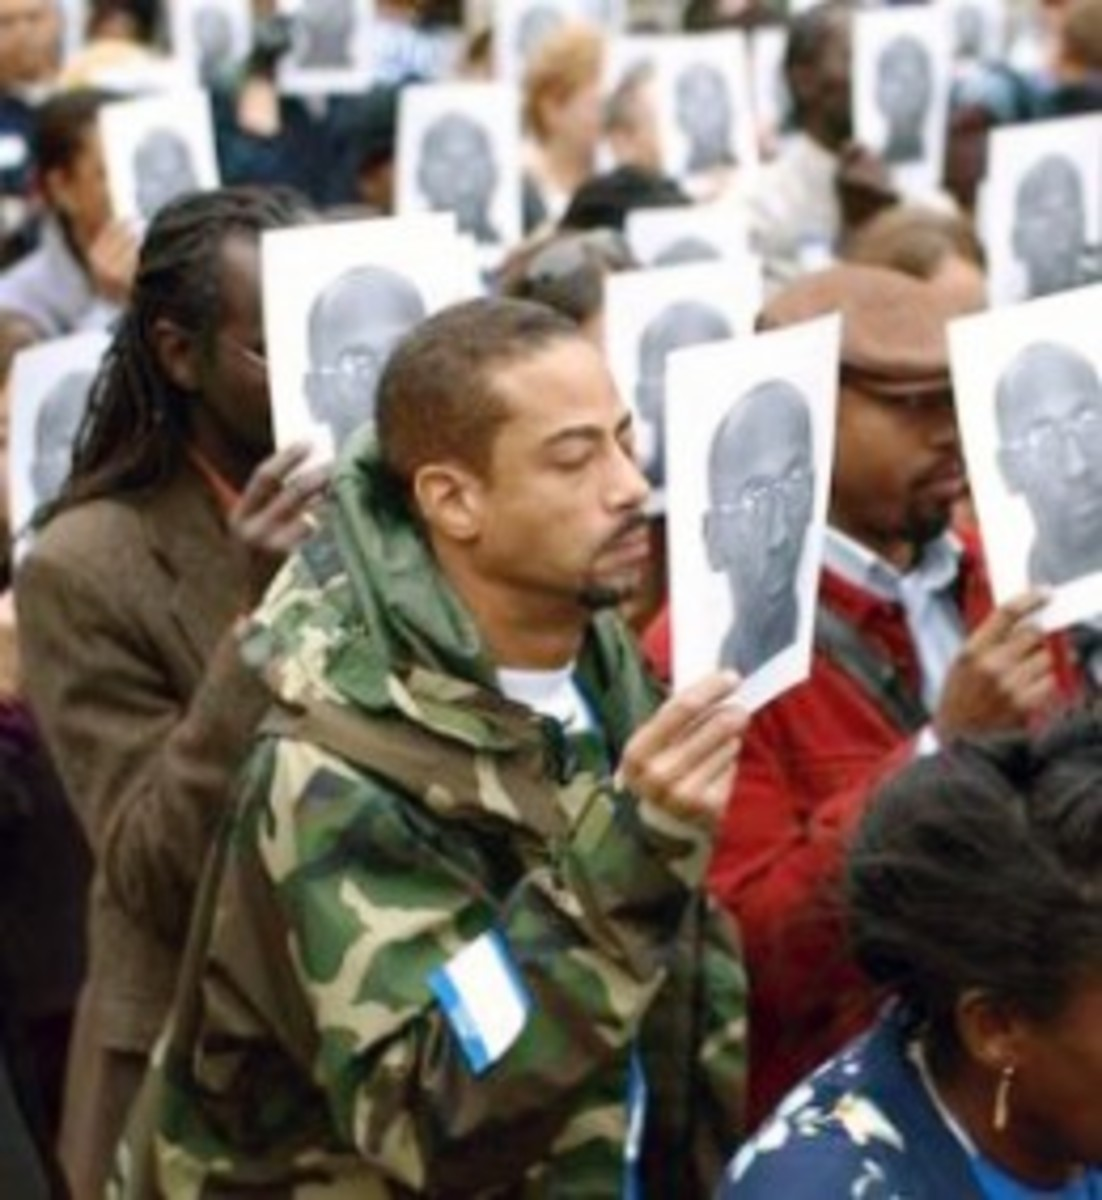 """"""" I AM TROY DAVIS"""" and what about Lawrence Brewer, can we recognize him as a human being and not simply an issue?"""